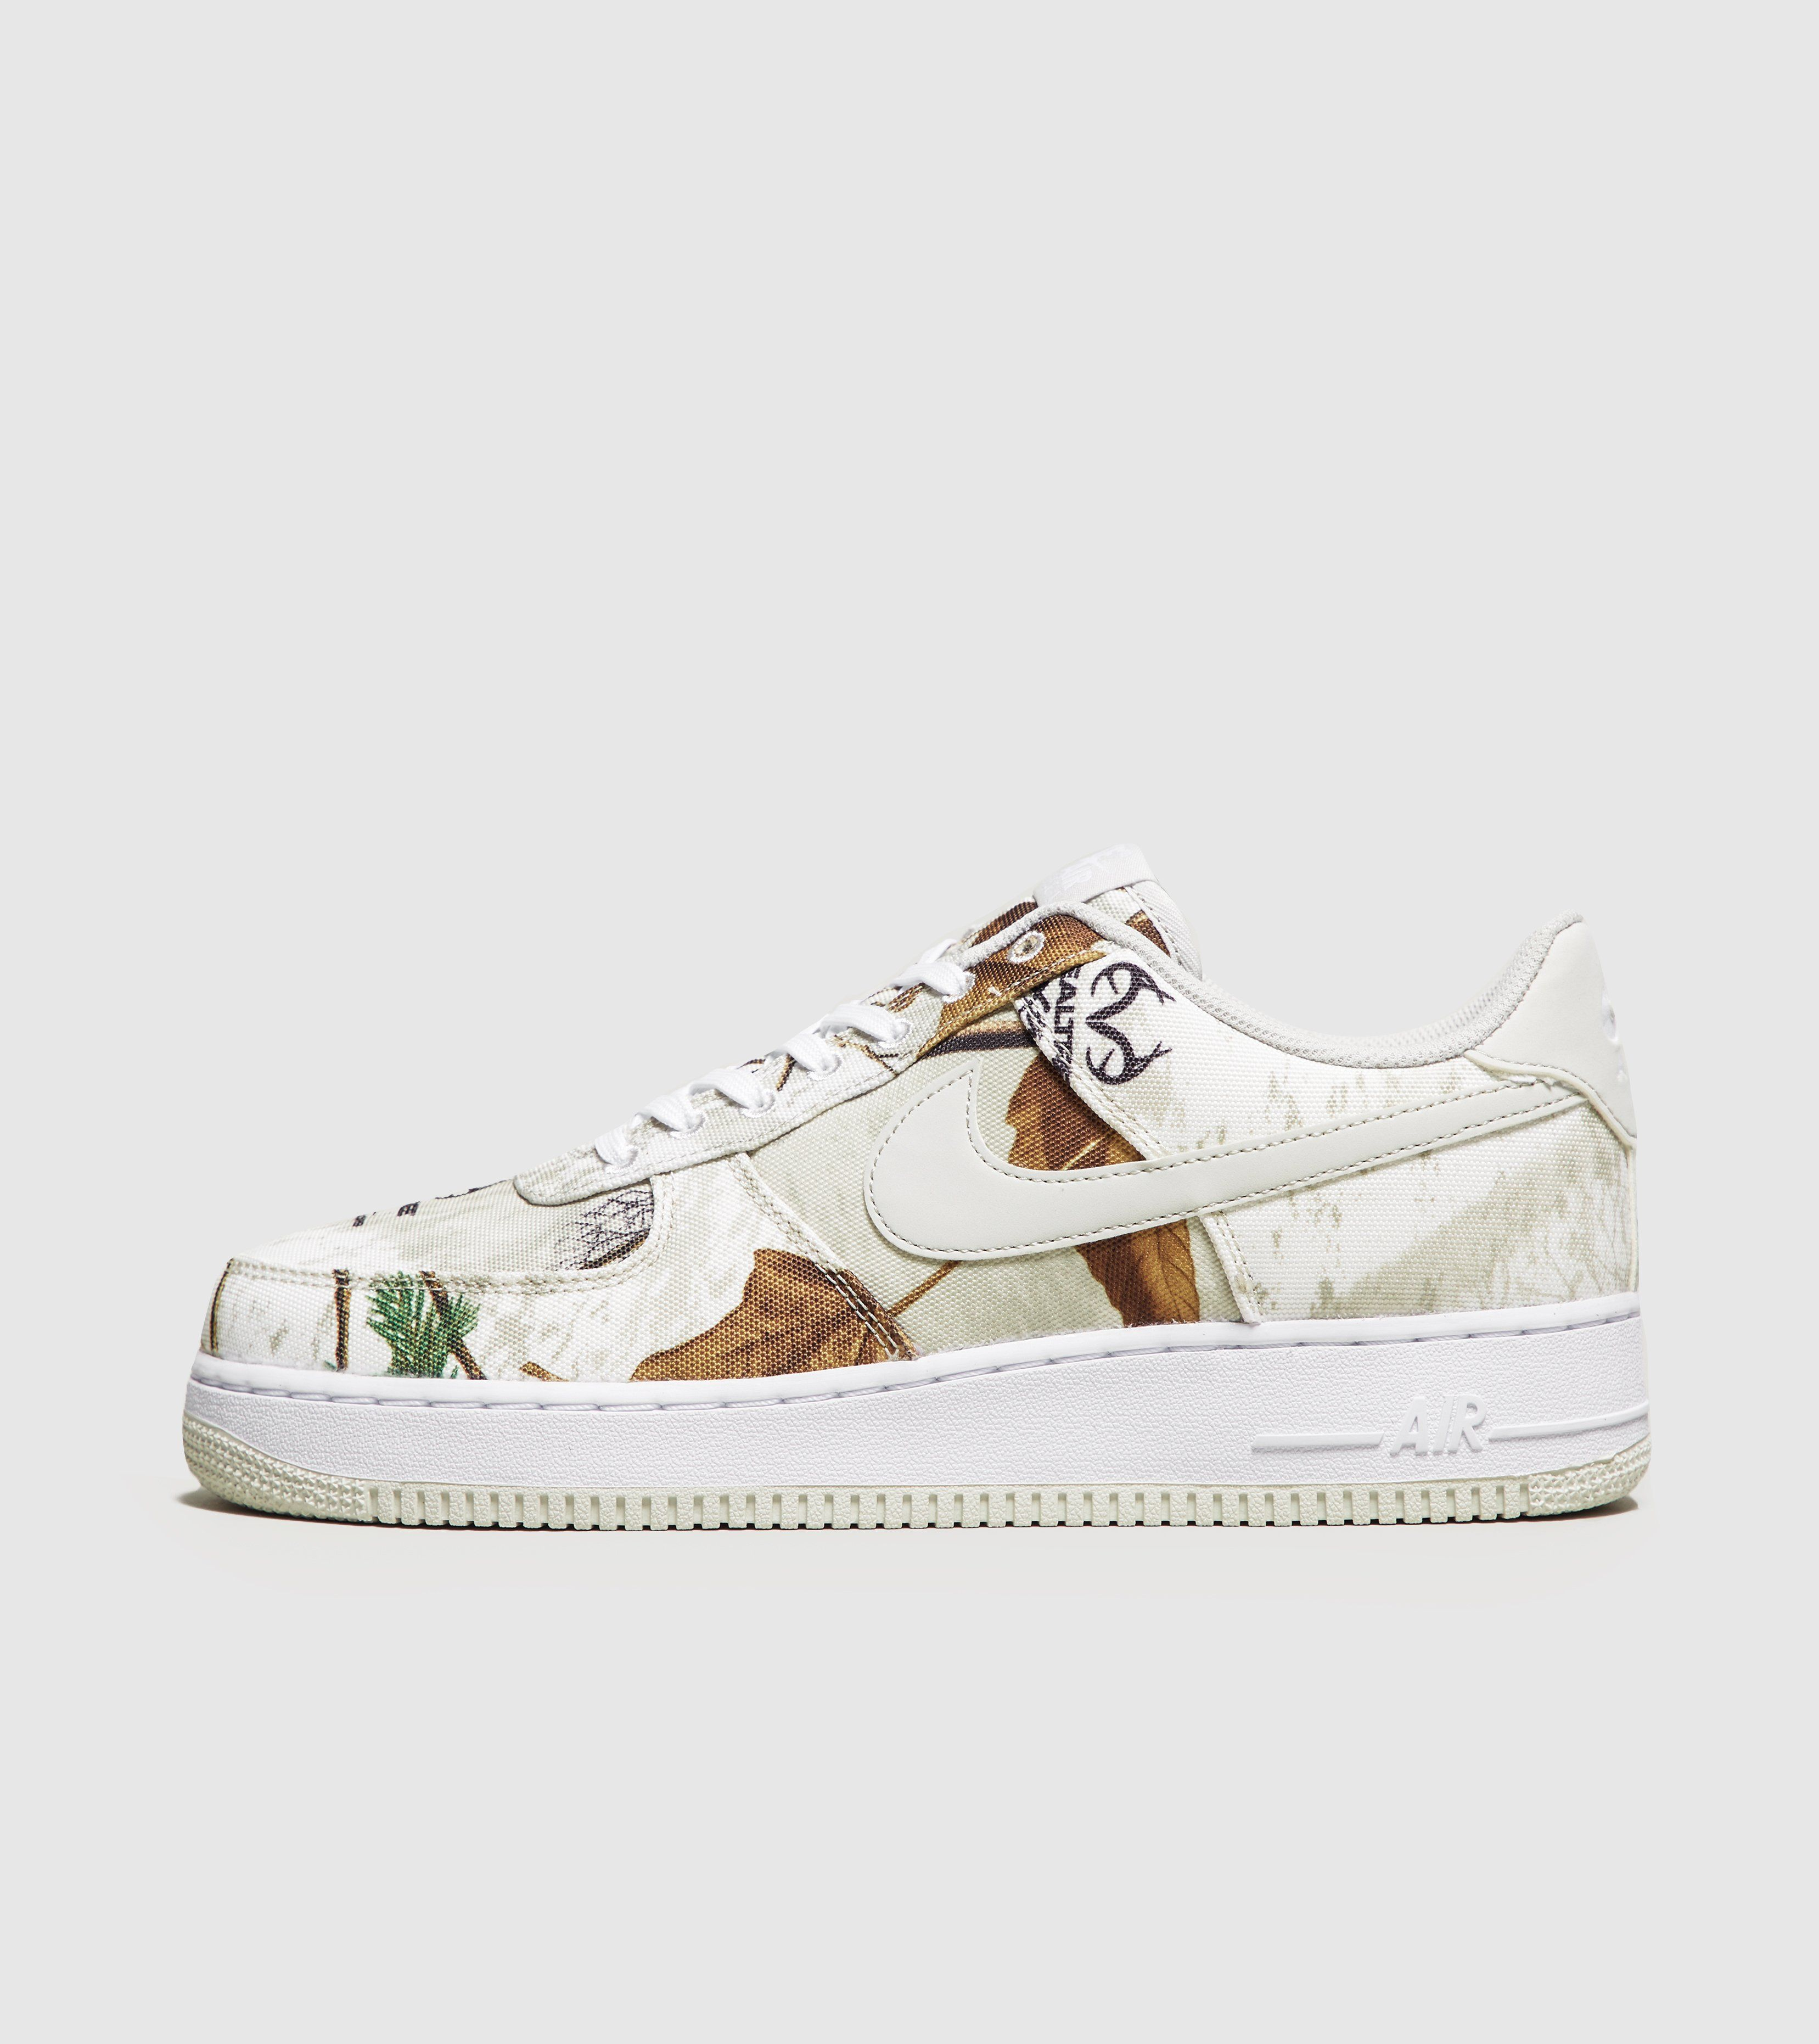 Nike Air Force 1 Low 'realtree' Camo Pack by Nike